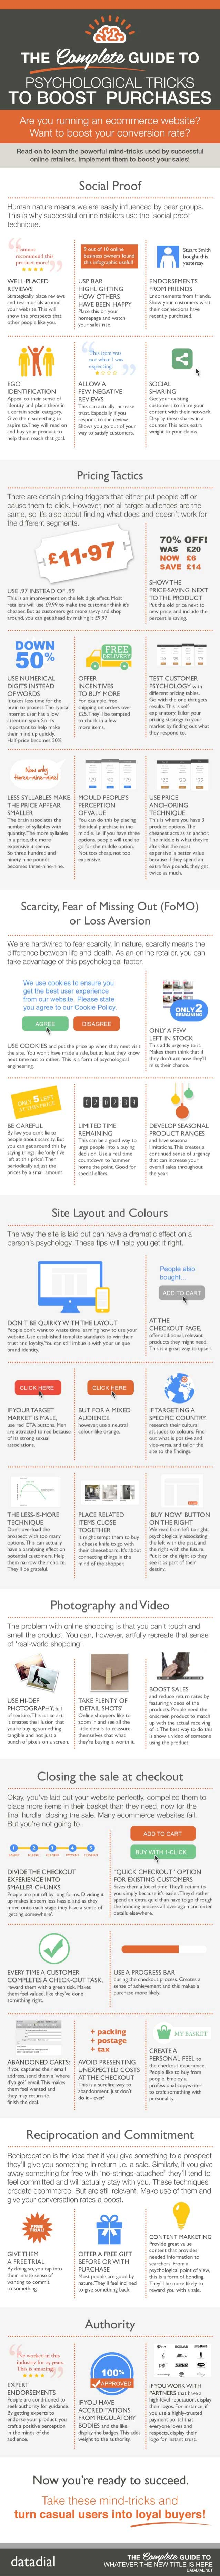 Psychological Tricks to boost eCommerce conversions